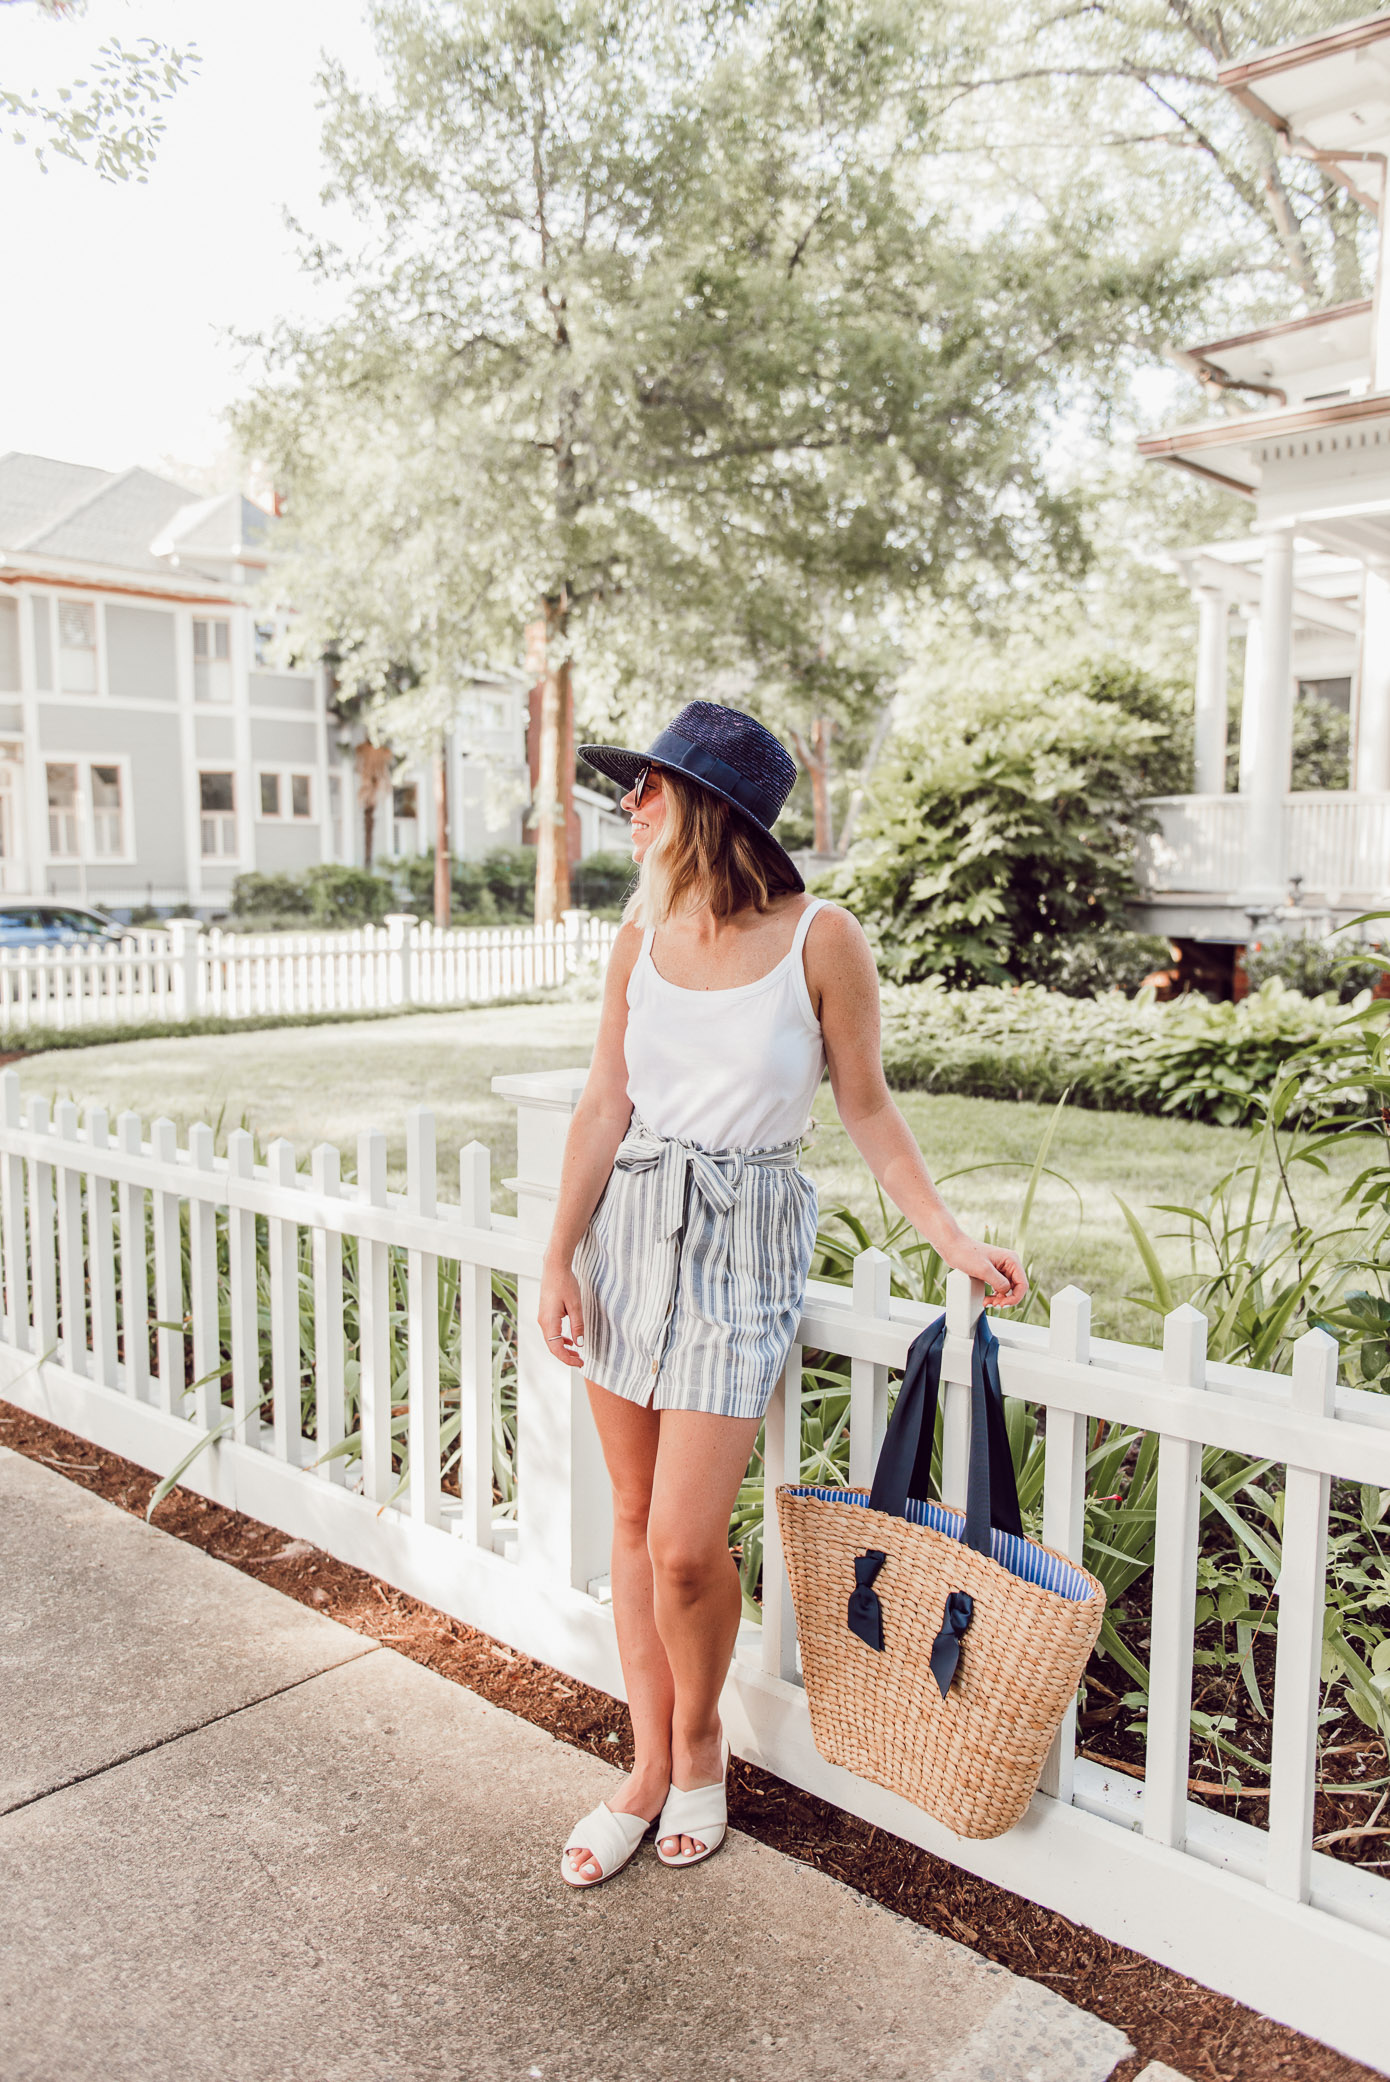 Savoring Summer   The Tank Every Woman Needs - Louella Reese